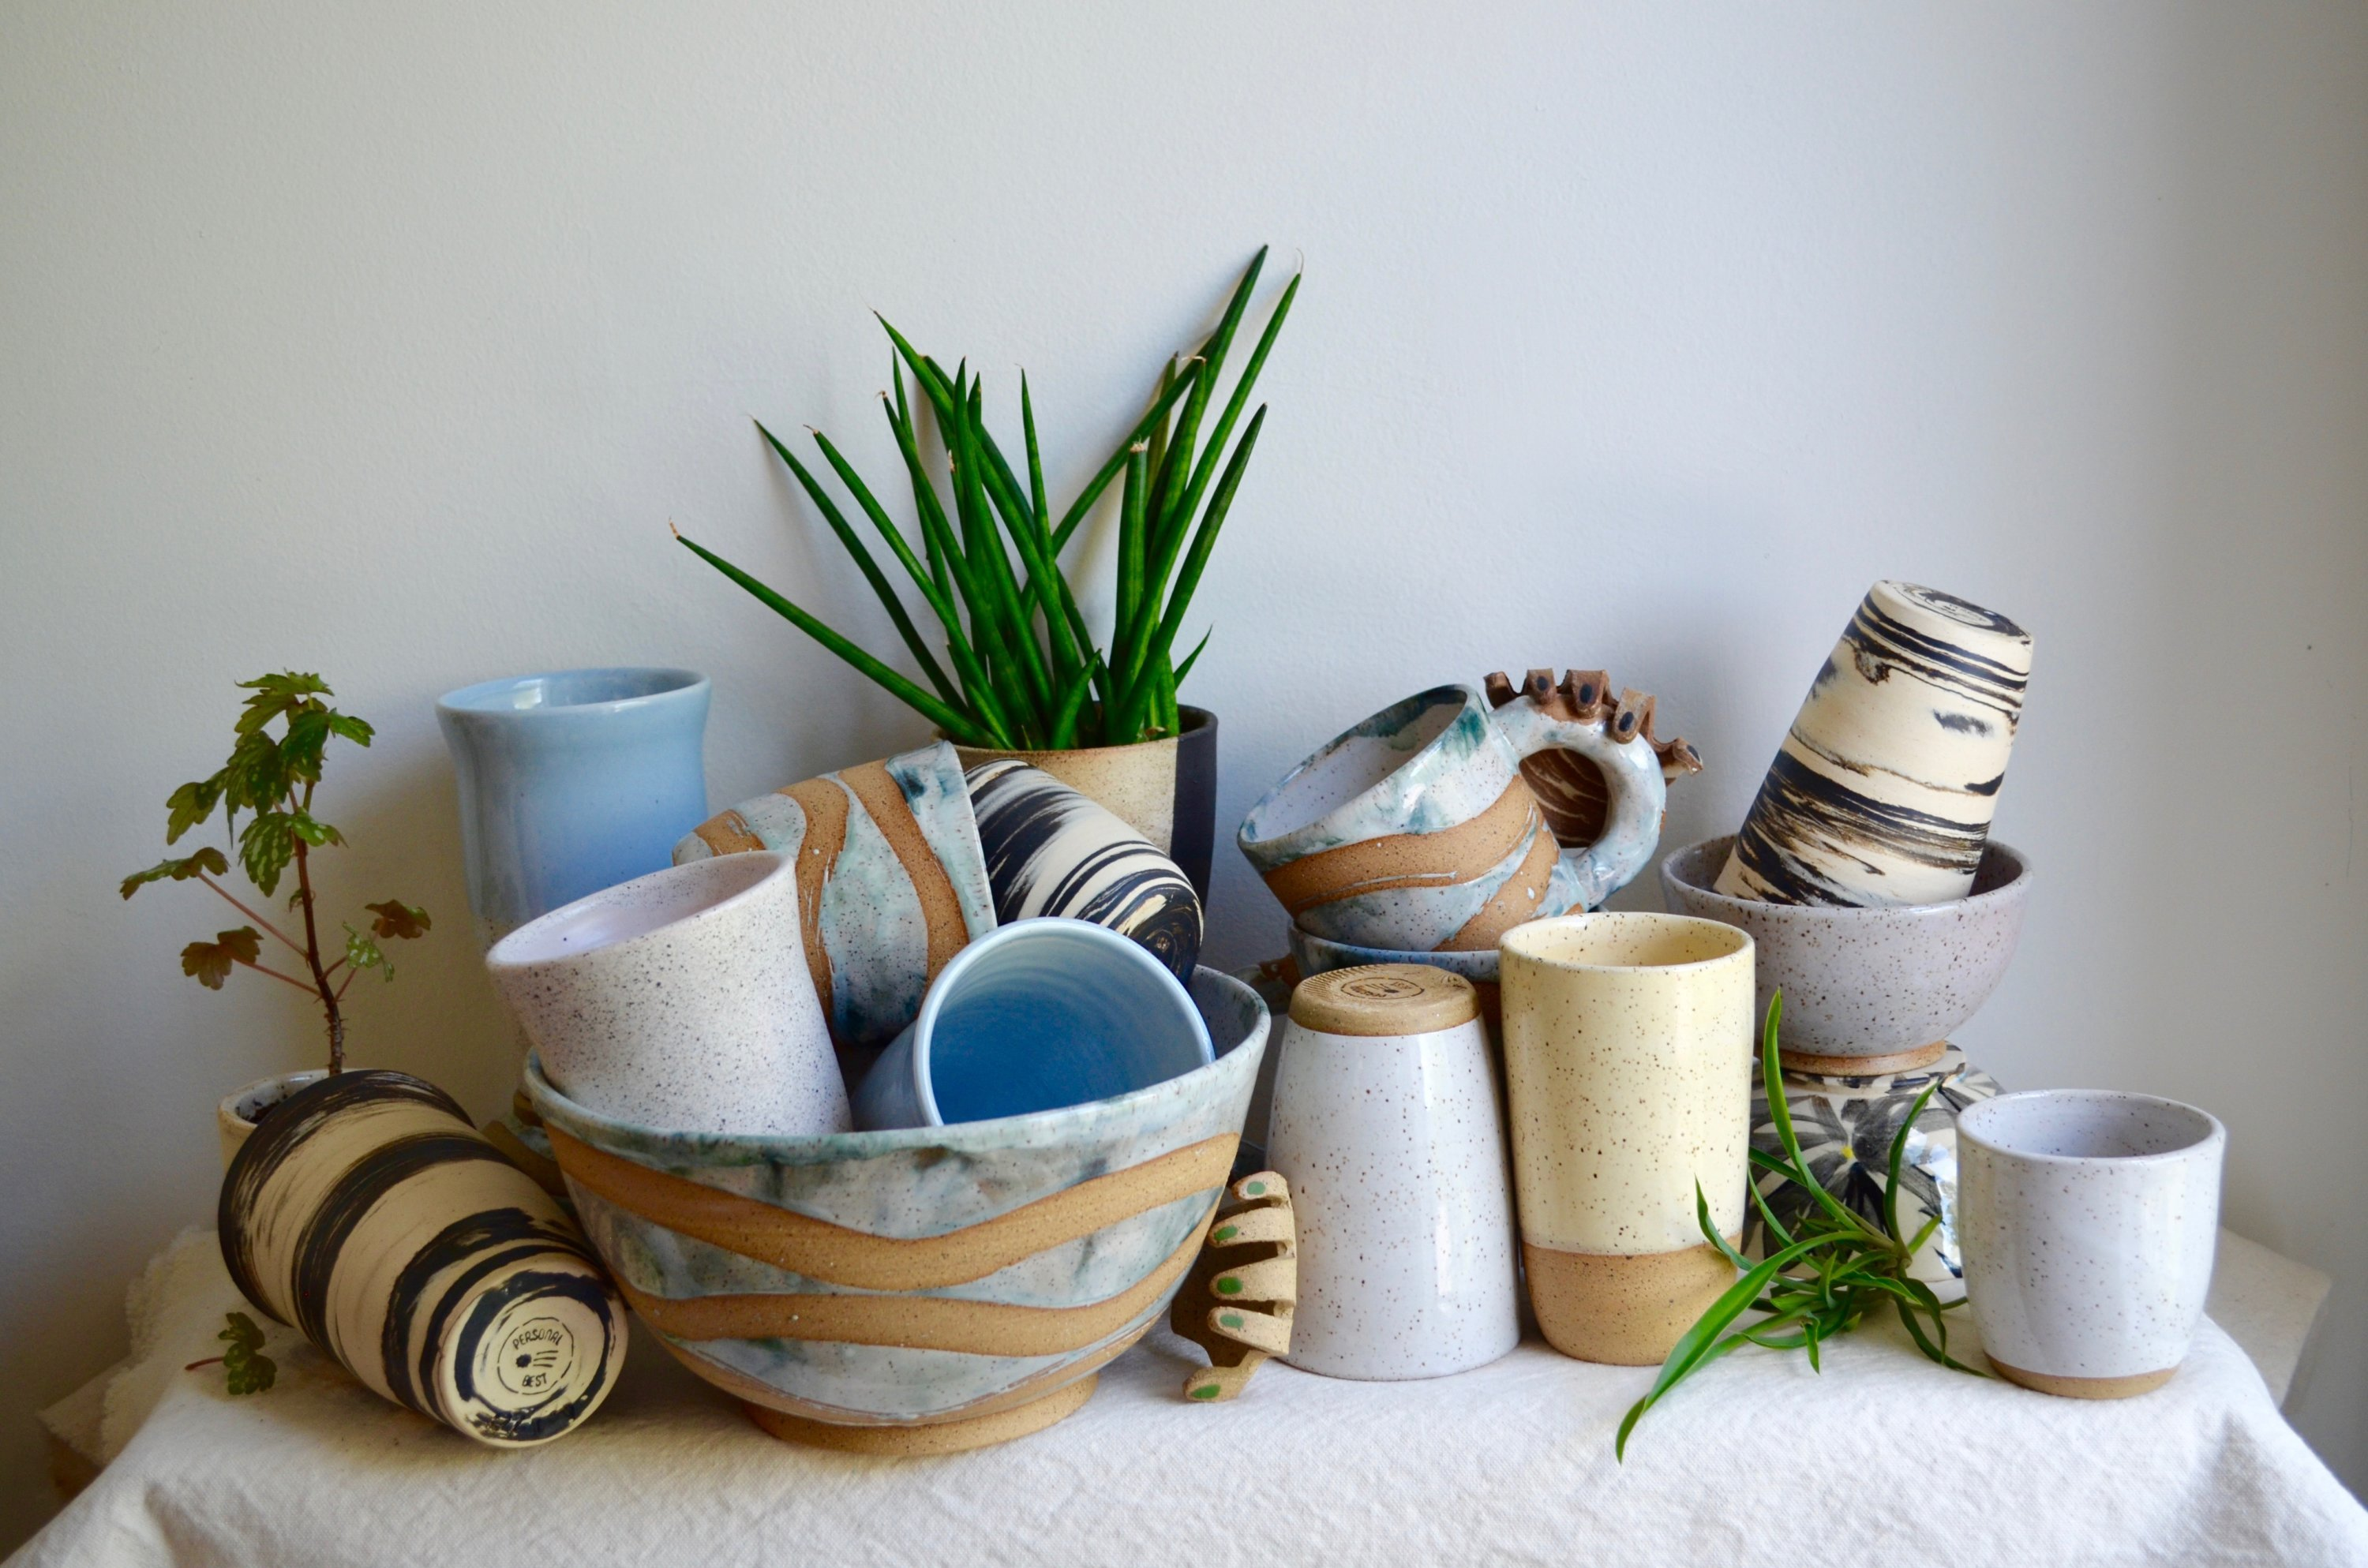 Shop for wares like Personal Best Ceramics at the Park View Holiday Market. Photo courtesy of Park View Holiday Market.